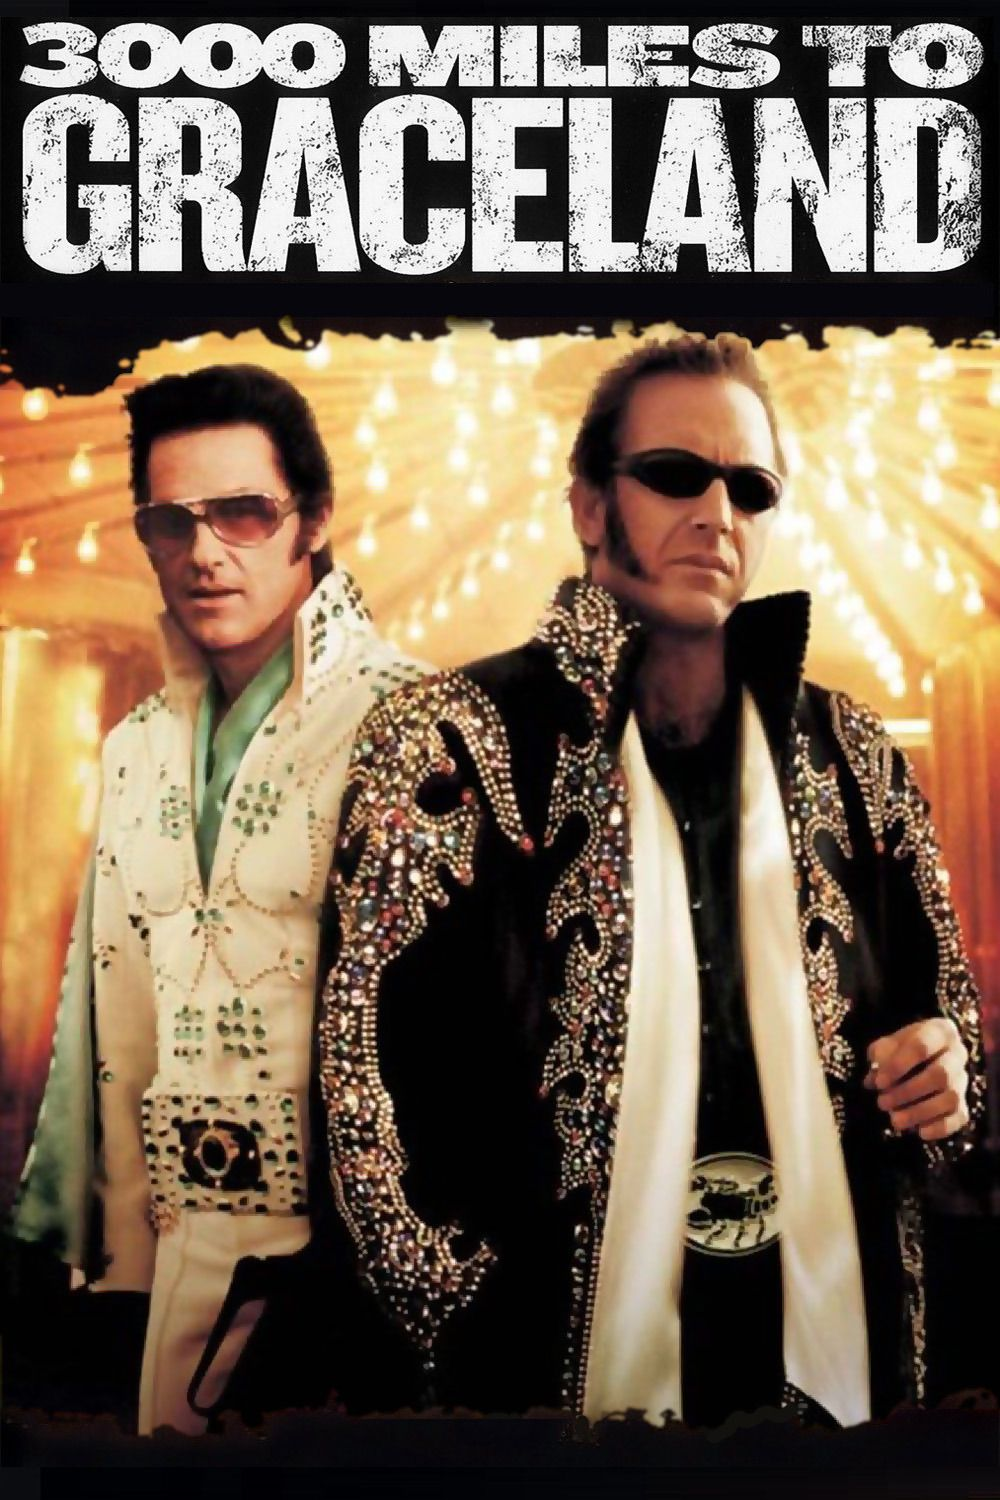 click image to watch 3000 Miles to Graceland (2001